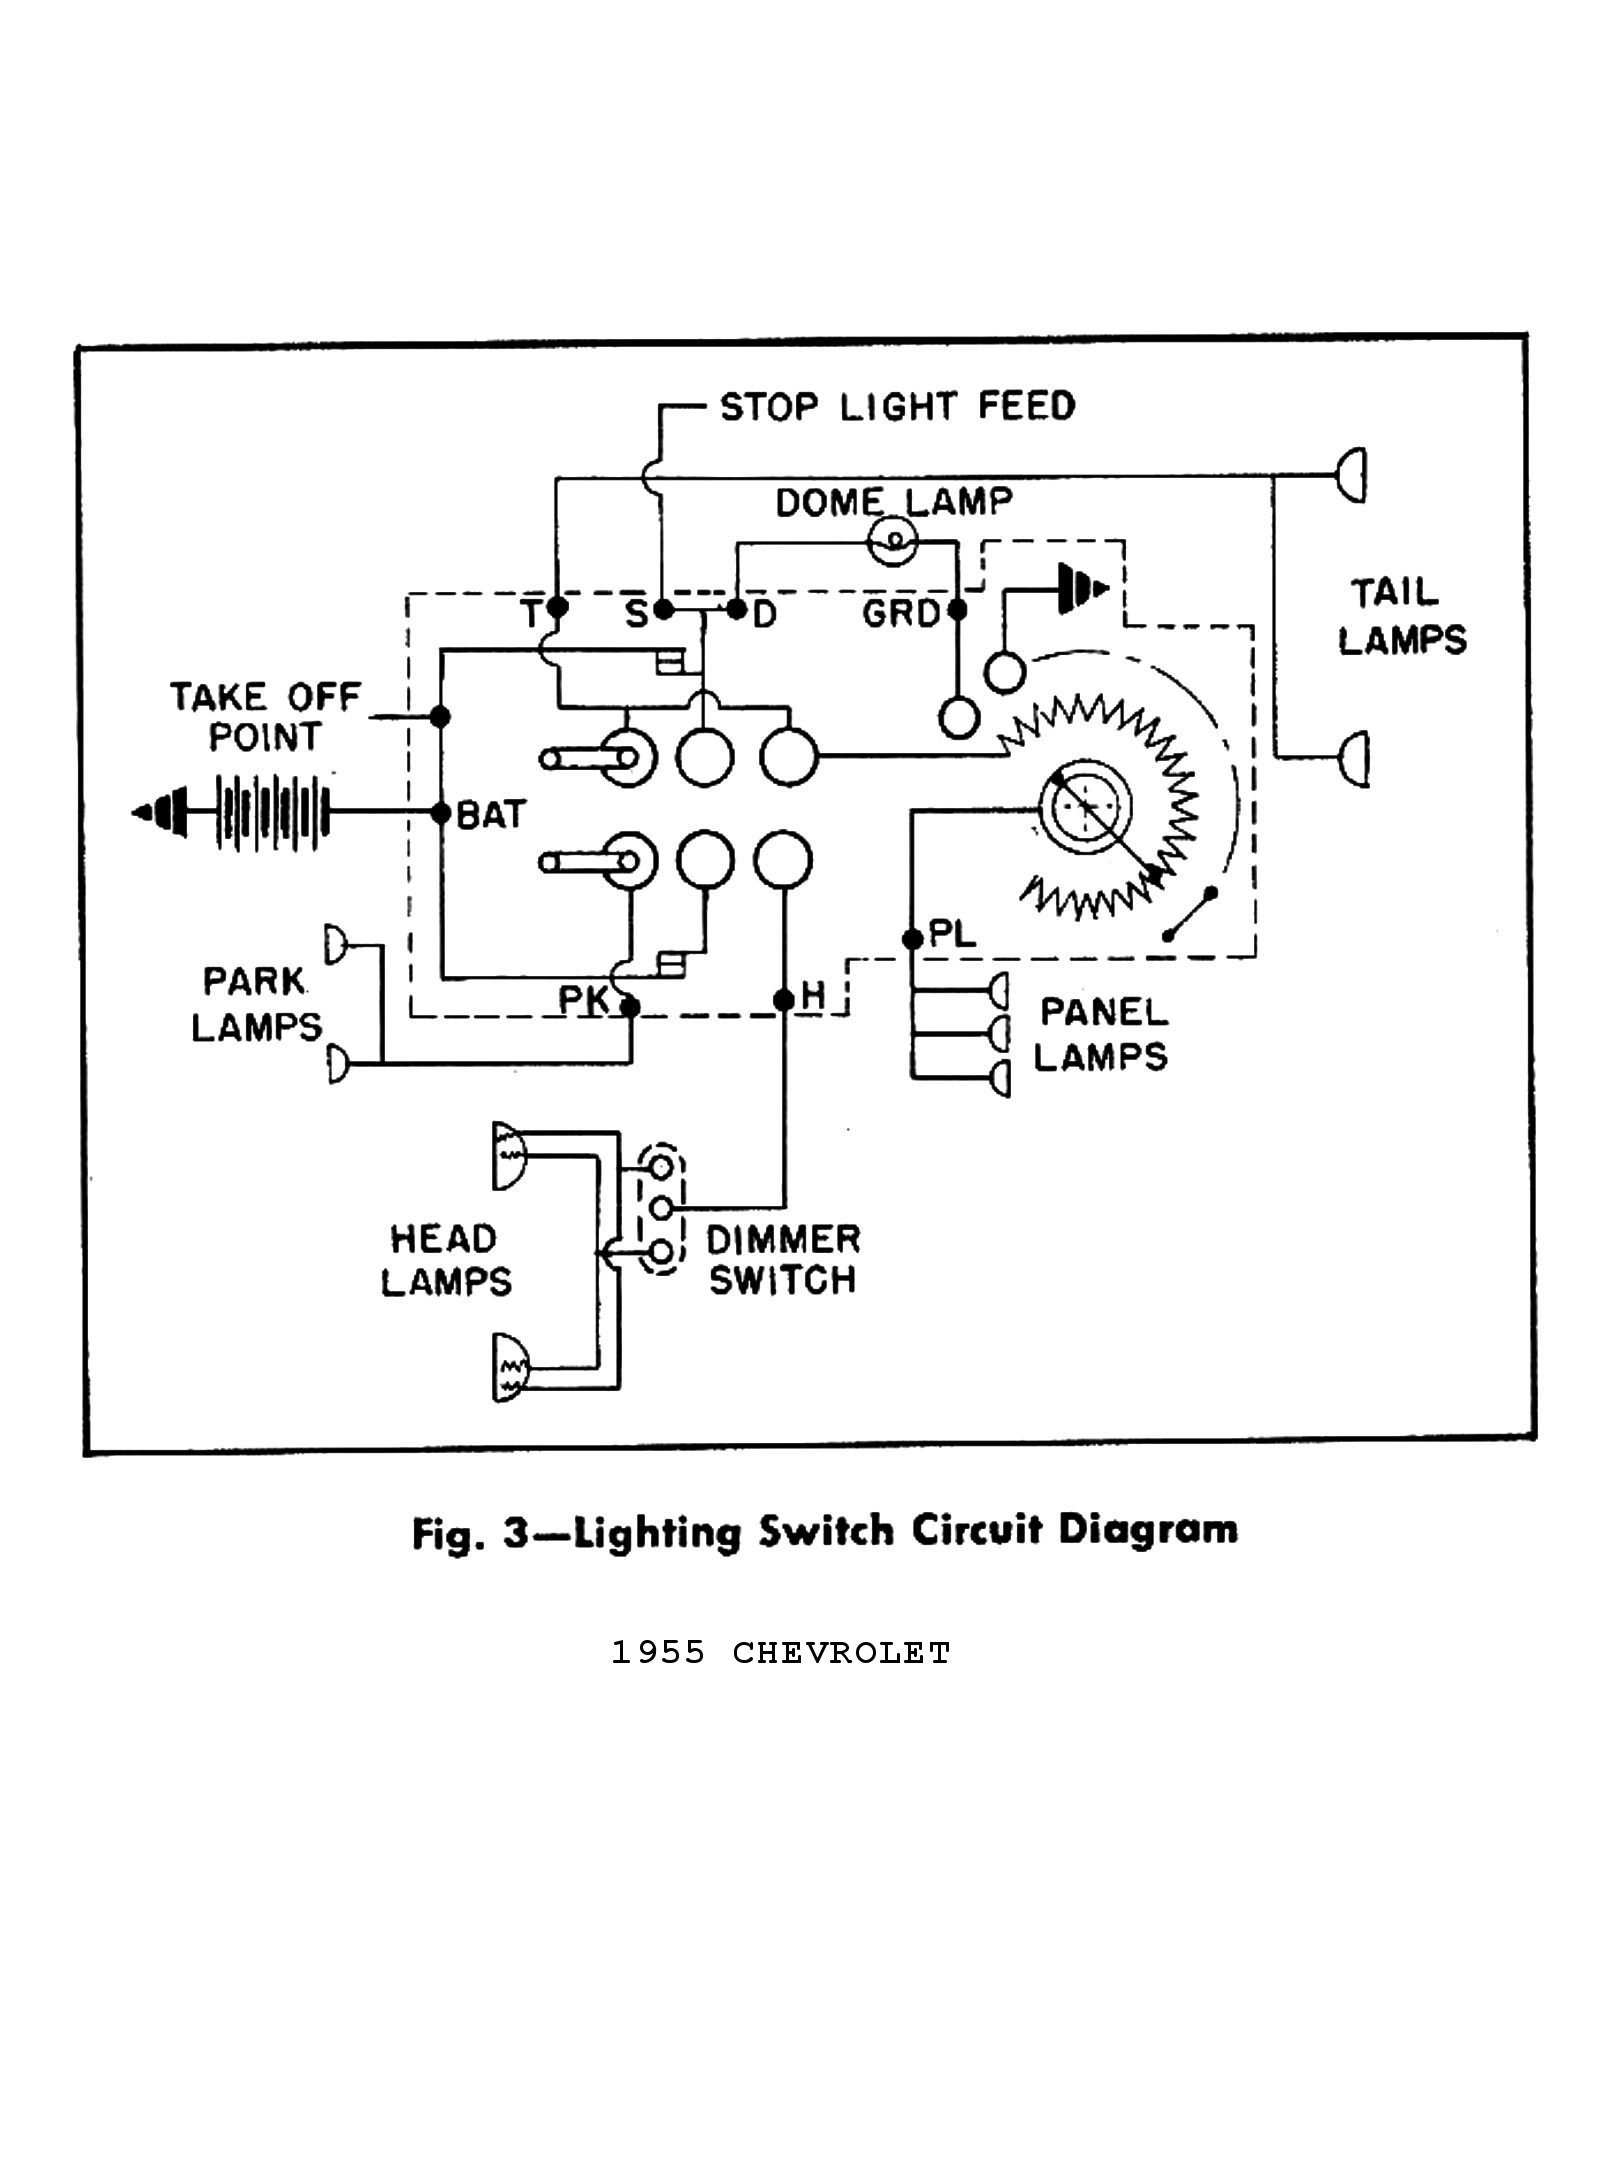 1955 lighting switch circuit